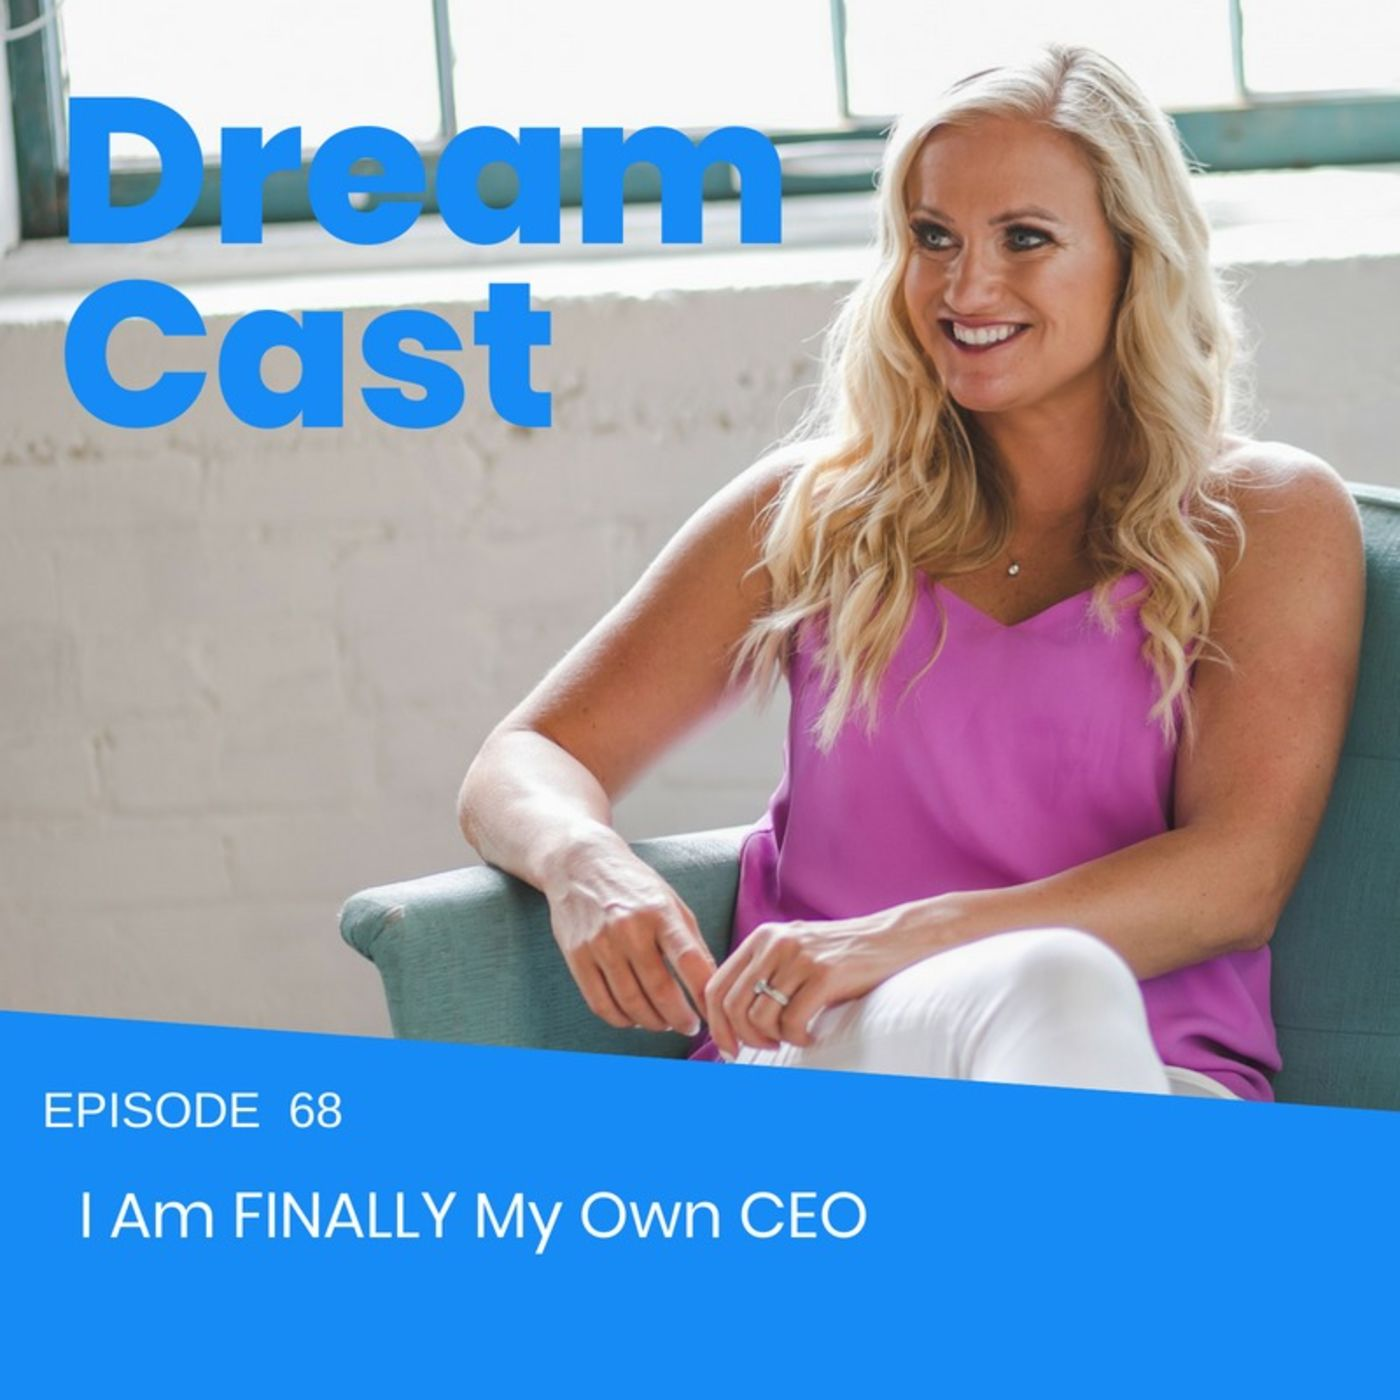 Episode 68 - I Am FINALLY My Own CEO